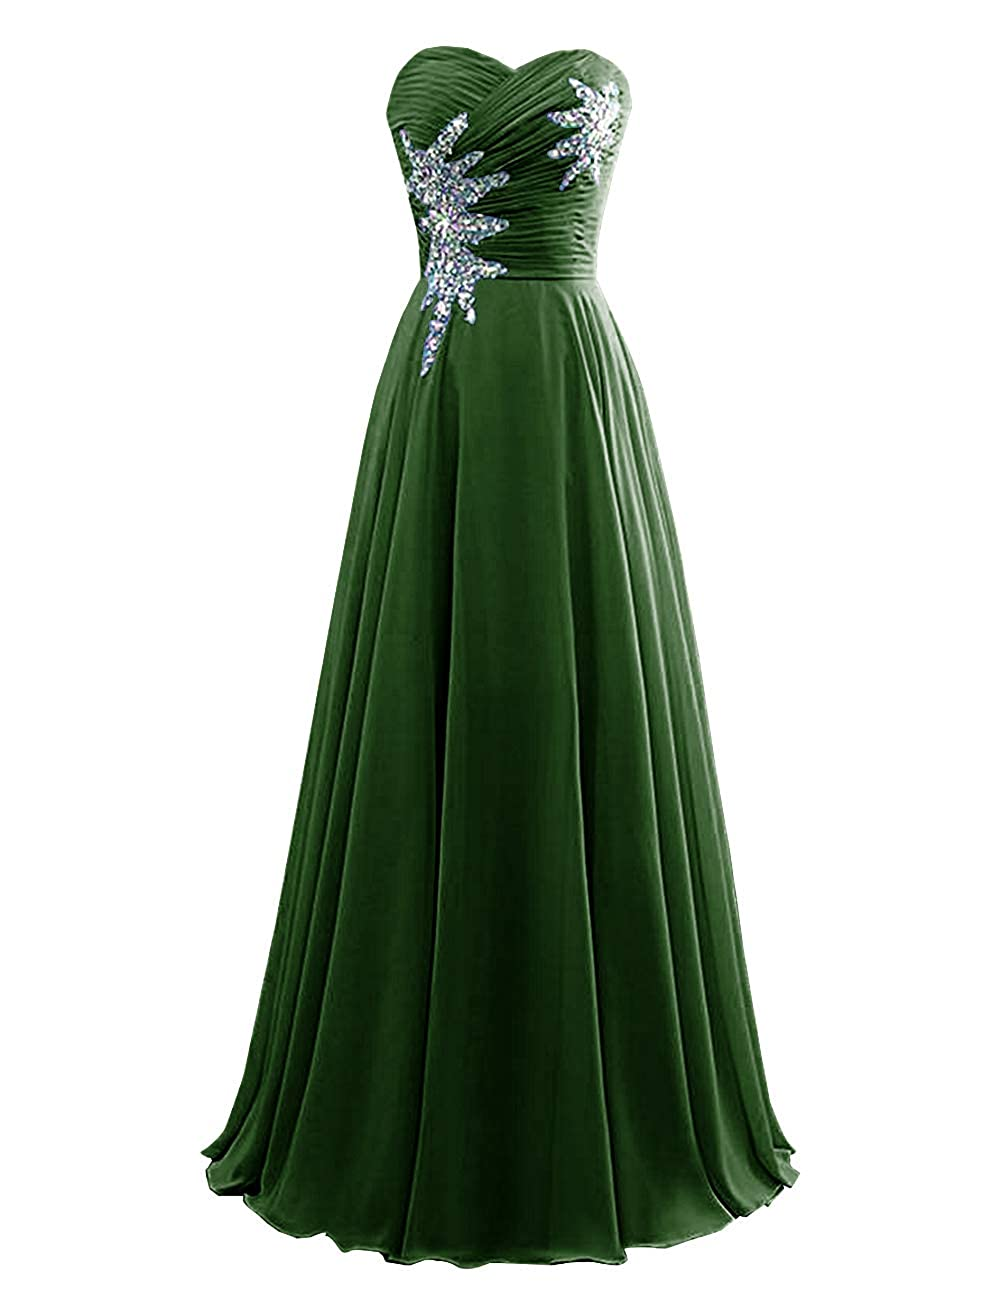 Dark Green Women's Strapless Bridesmaid Dresses Beaded Prom Wedding Party Gowns